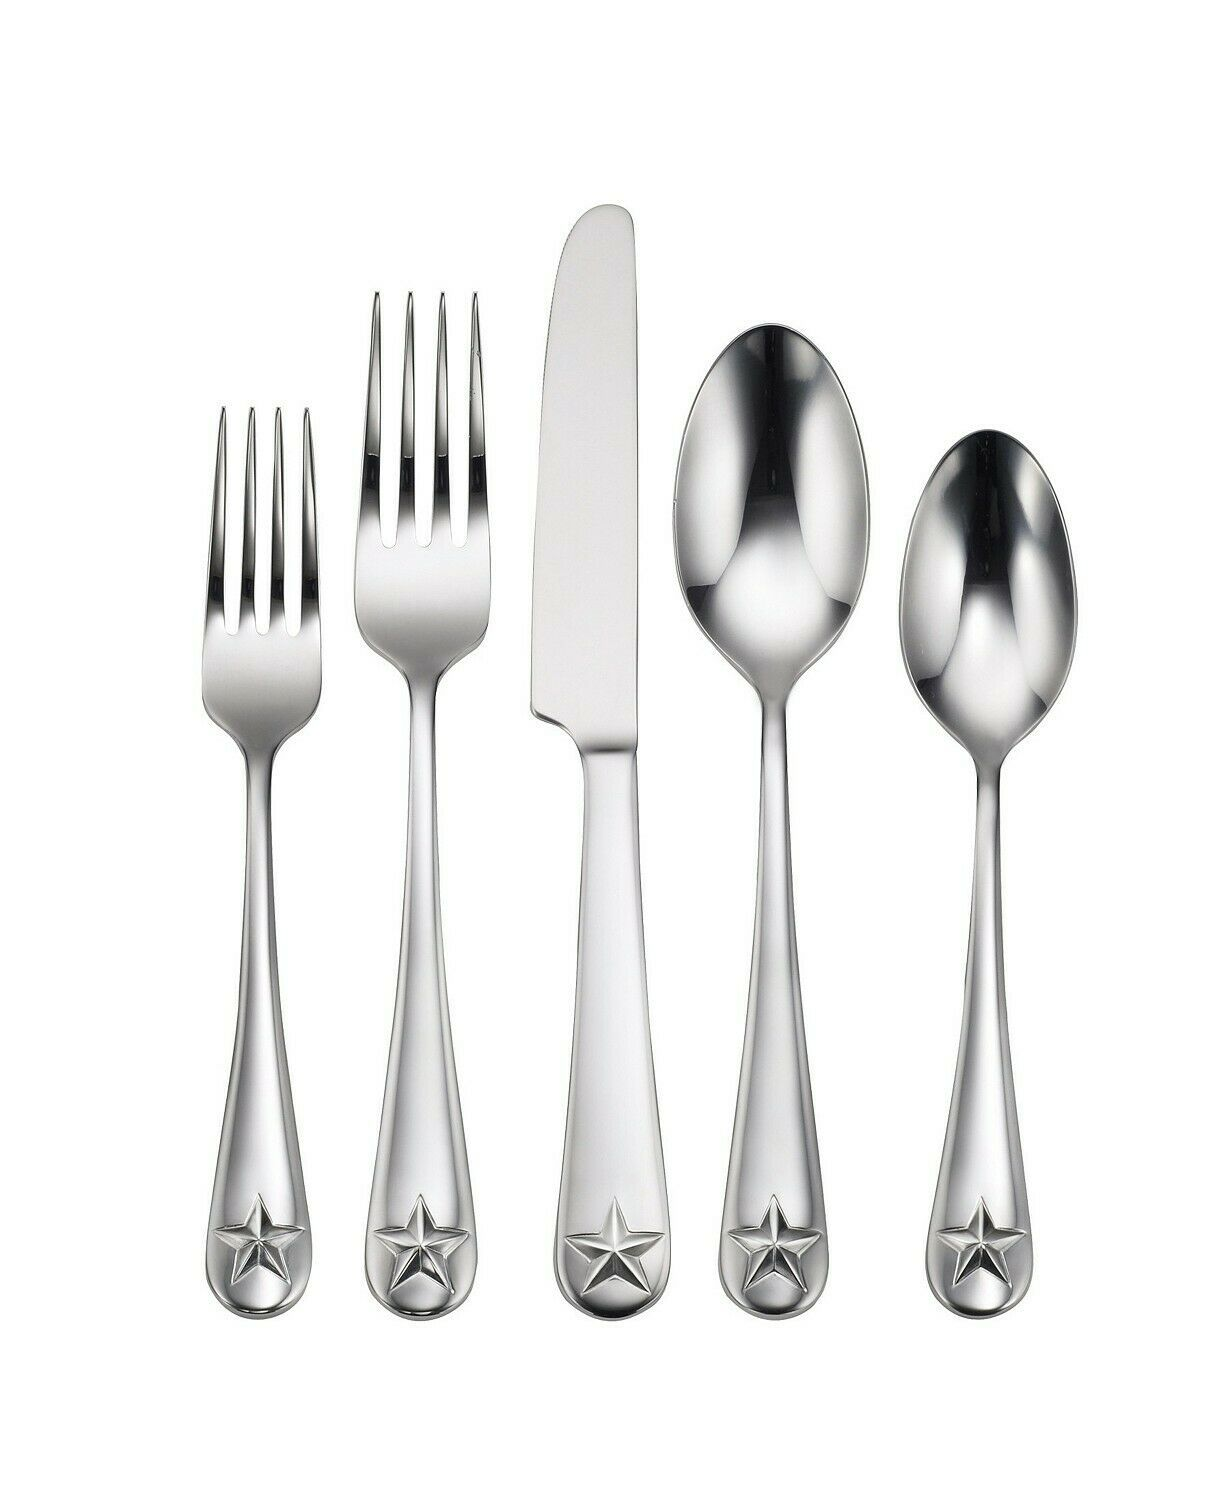 Oneida Tindra 45-pc Flatware Set, Service for 8 NEW - $89.99